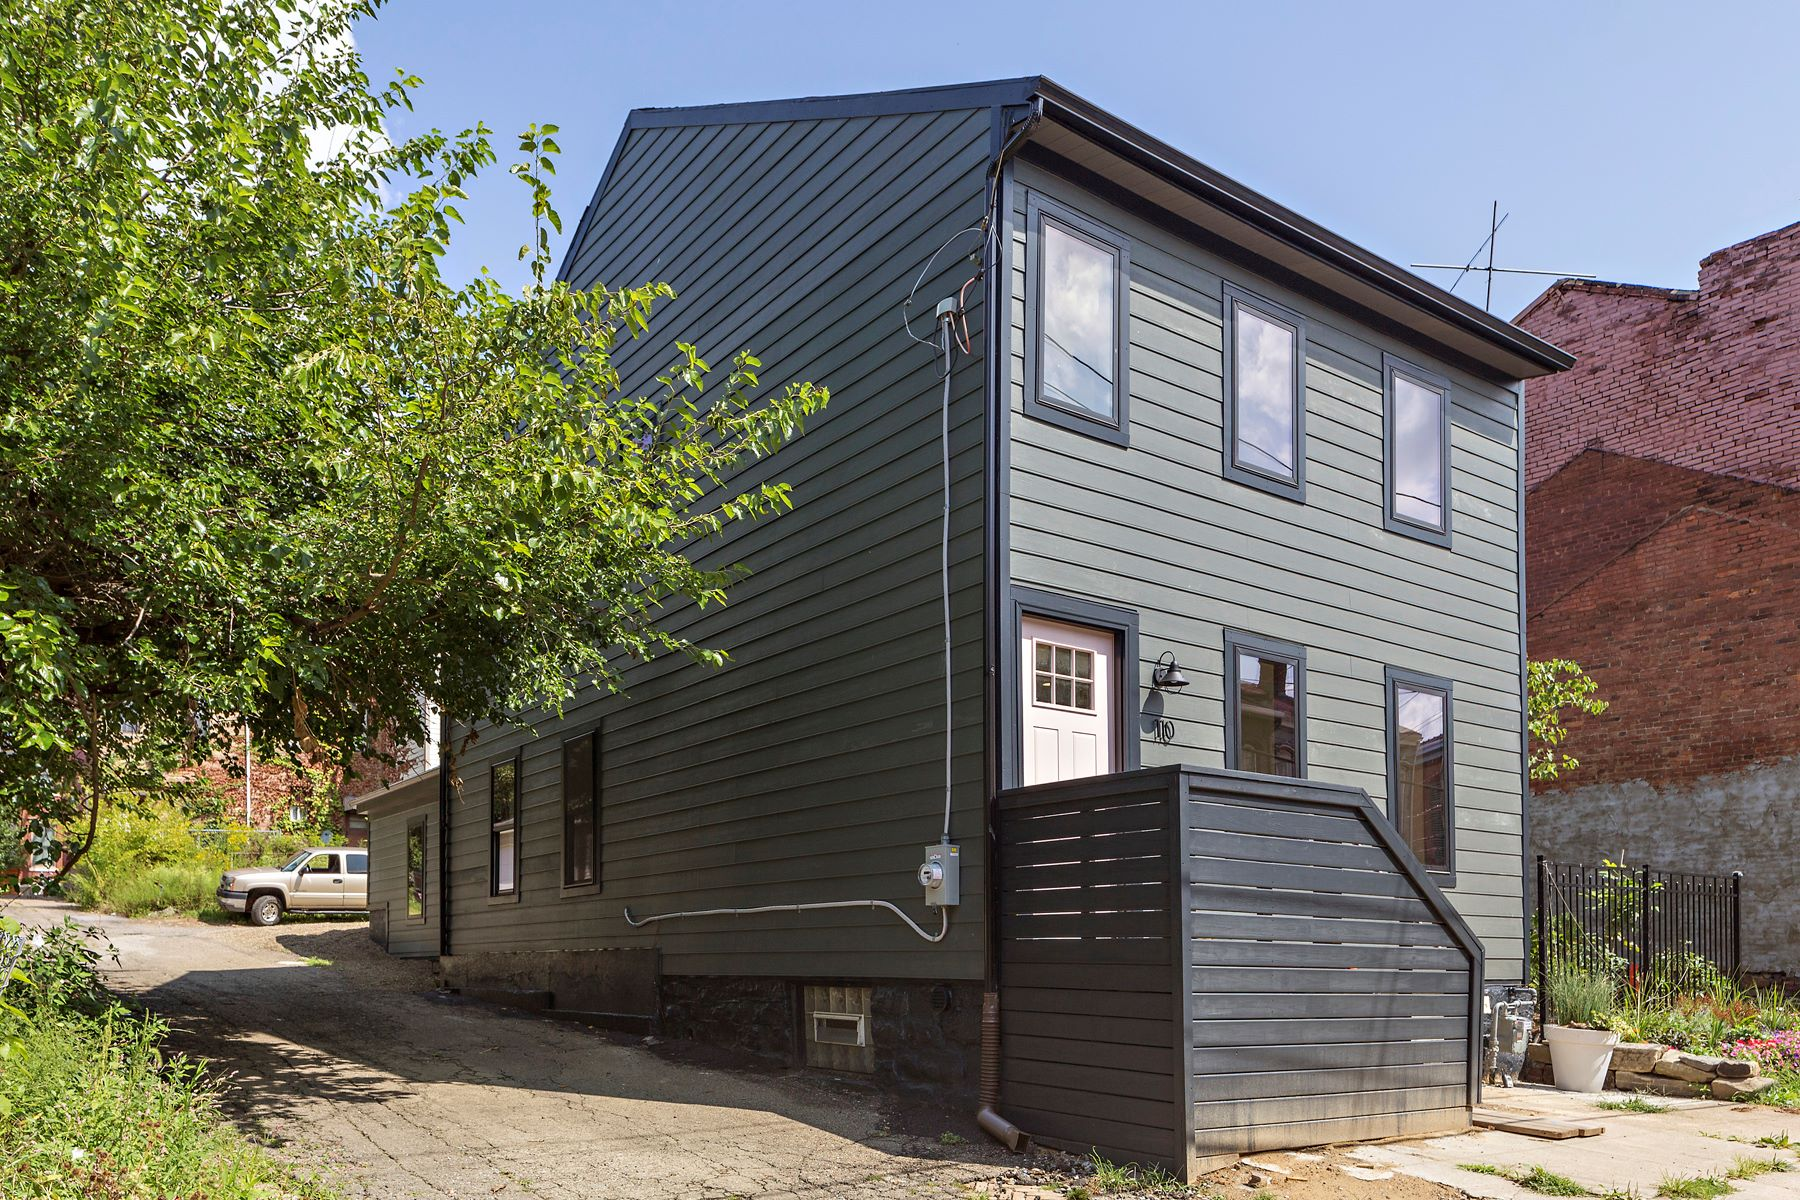 Additional photo for property listing at New Home in Historic Mexican War Streets Neighborhood 110 Sampsonia Way Pittsburgh, Pennsylvania 15212 United States